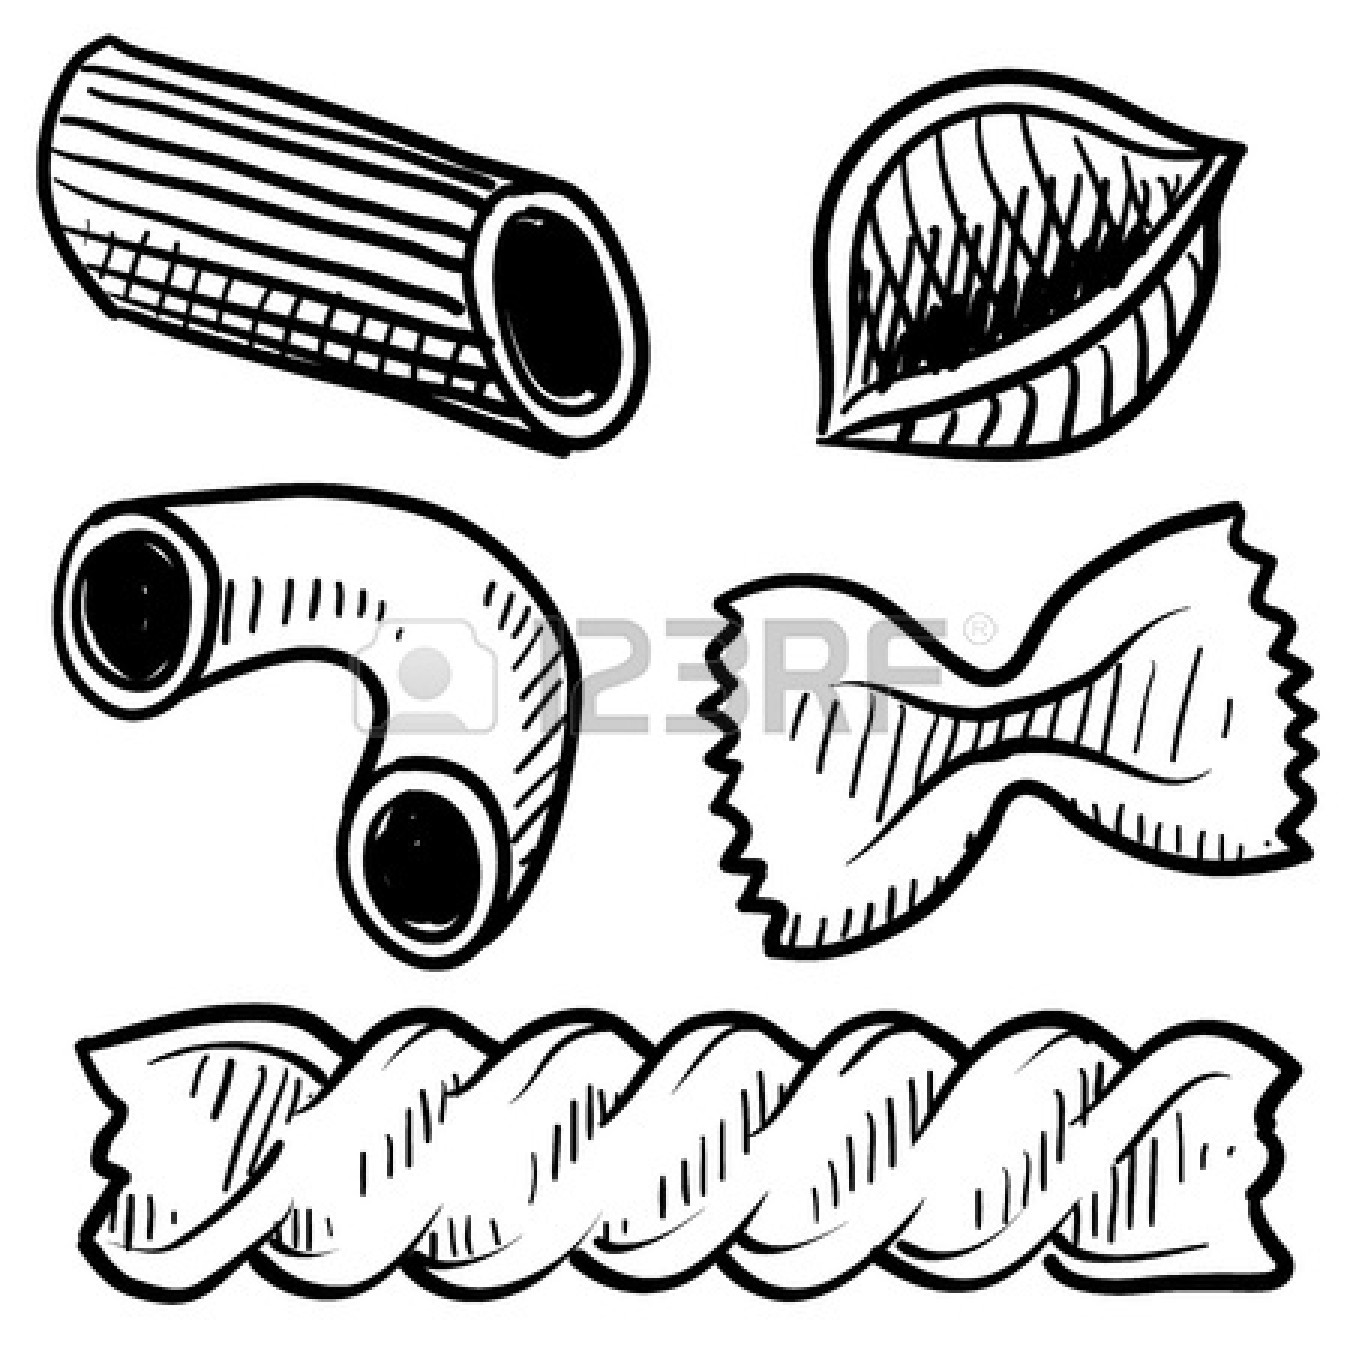 Macaroni clipart black and white Clipart Images Pasta pasta%20clipart%20black%20and%20white White